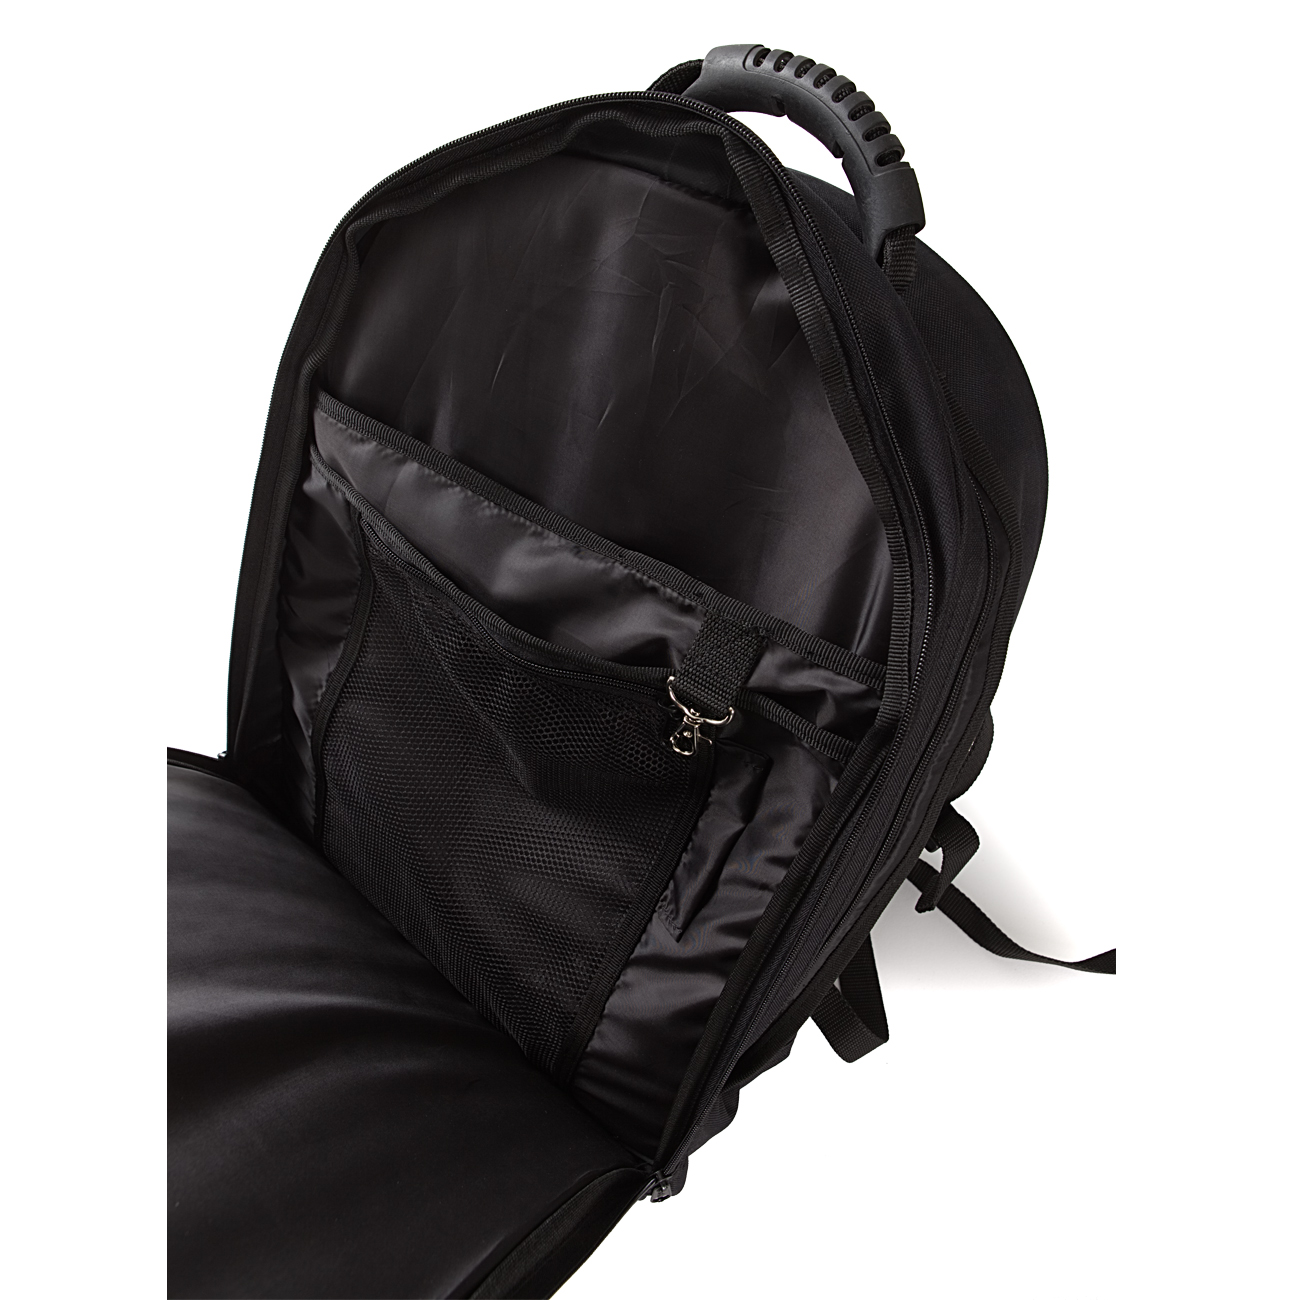 MS_Drummer_Backpack_2